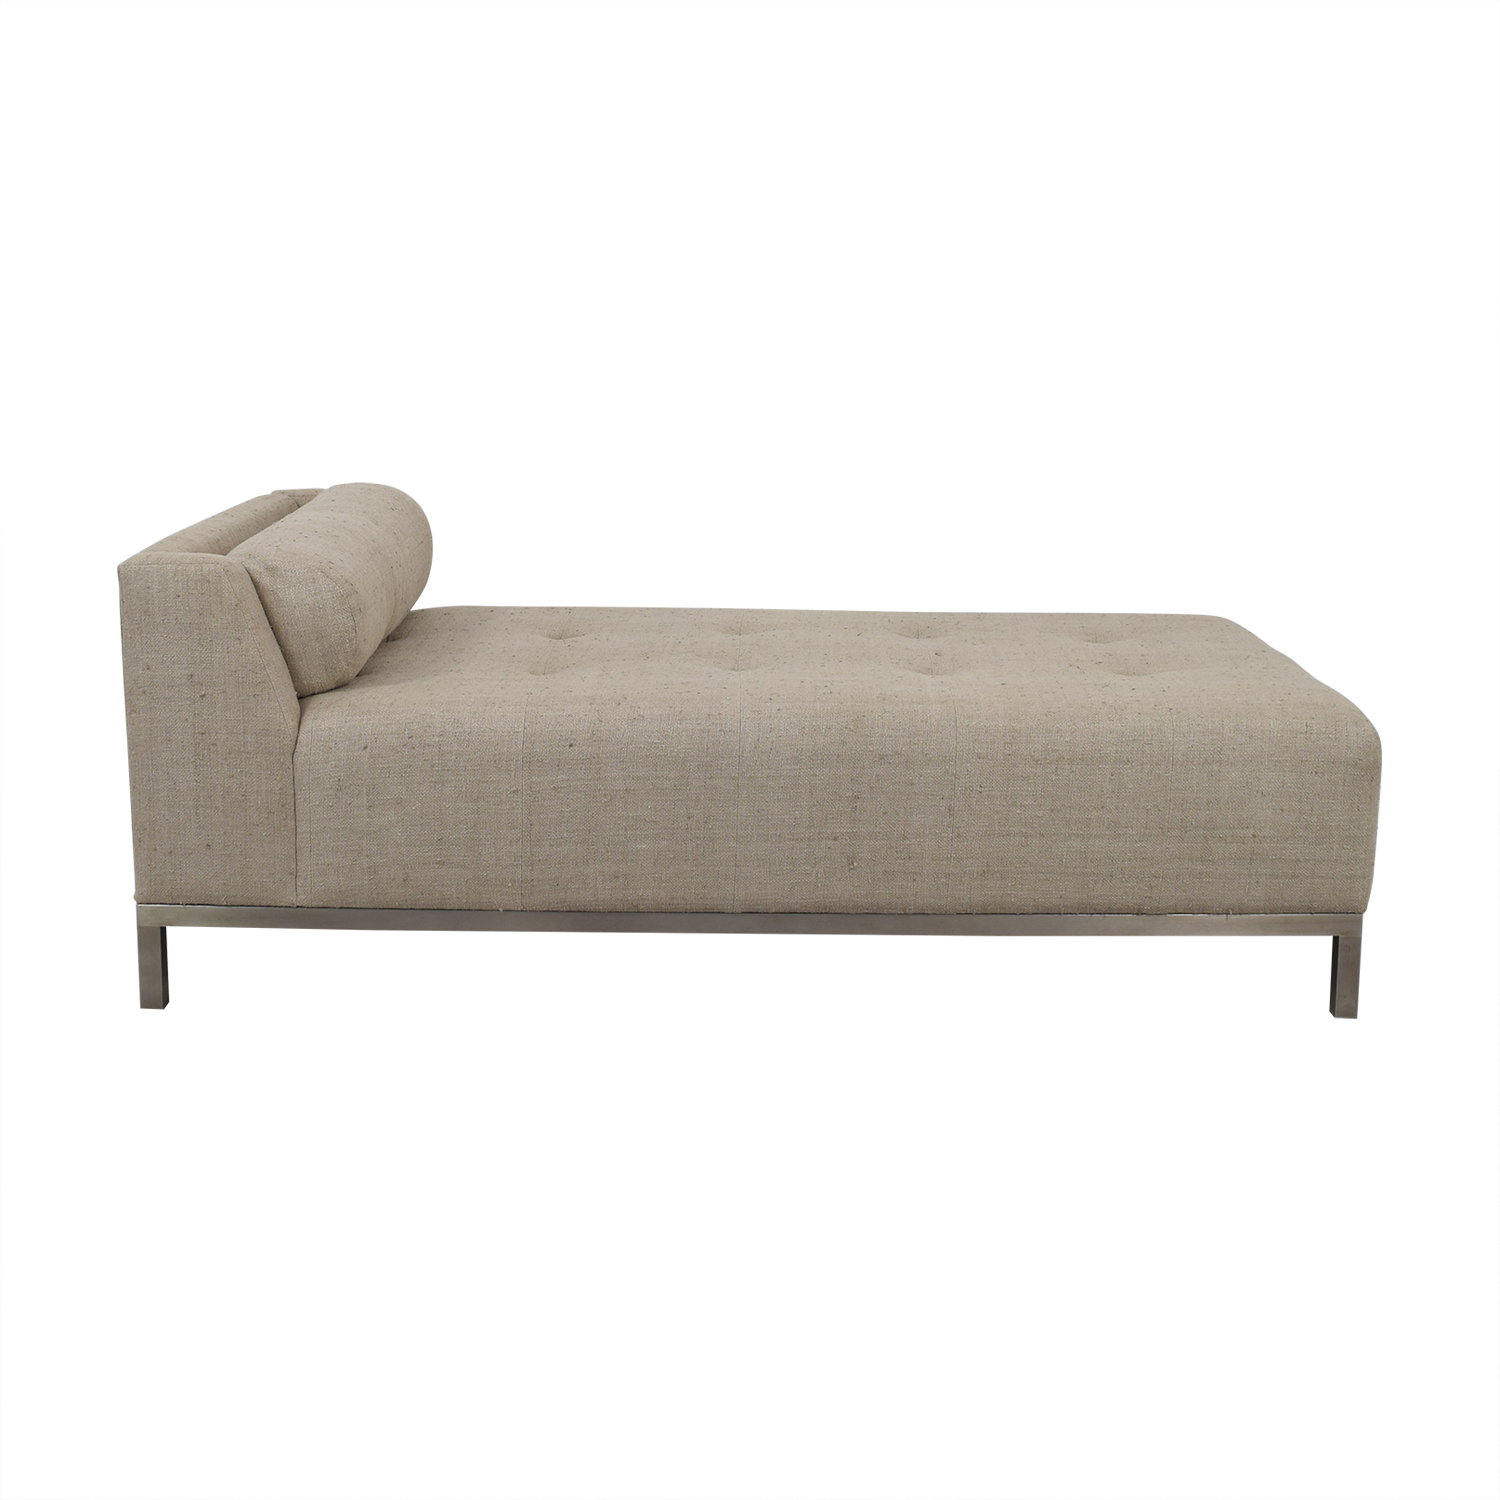 shop Furniture Masters Gray Tufted Chaise Furniture Masters